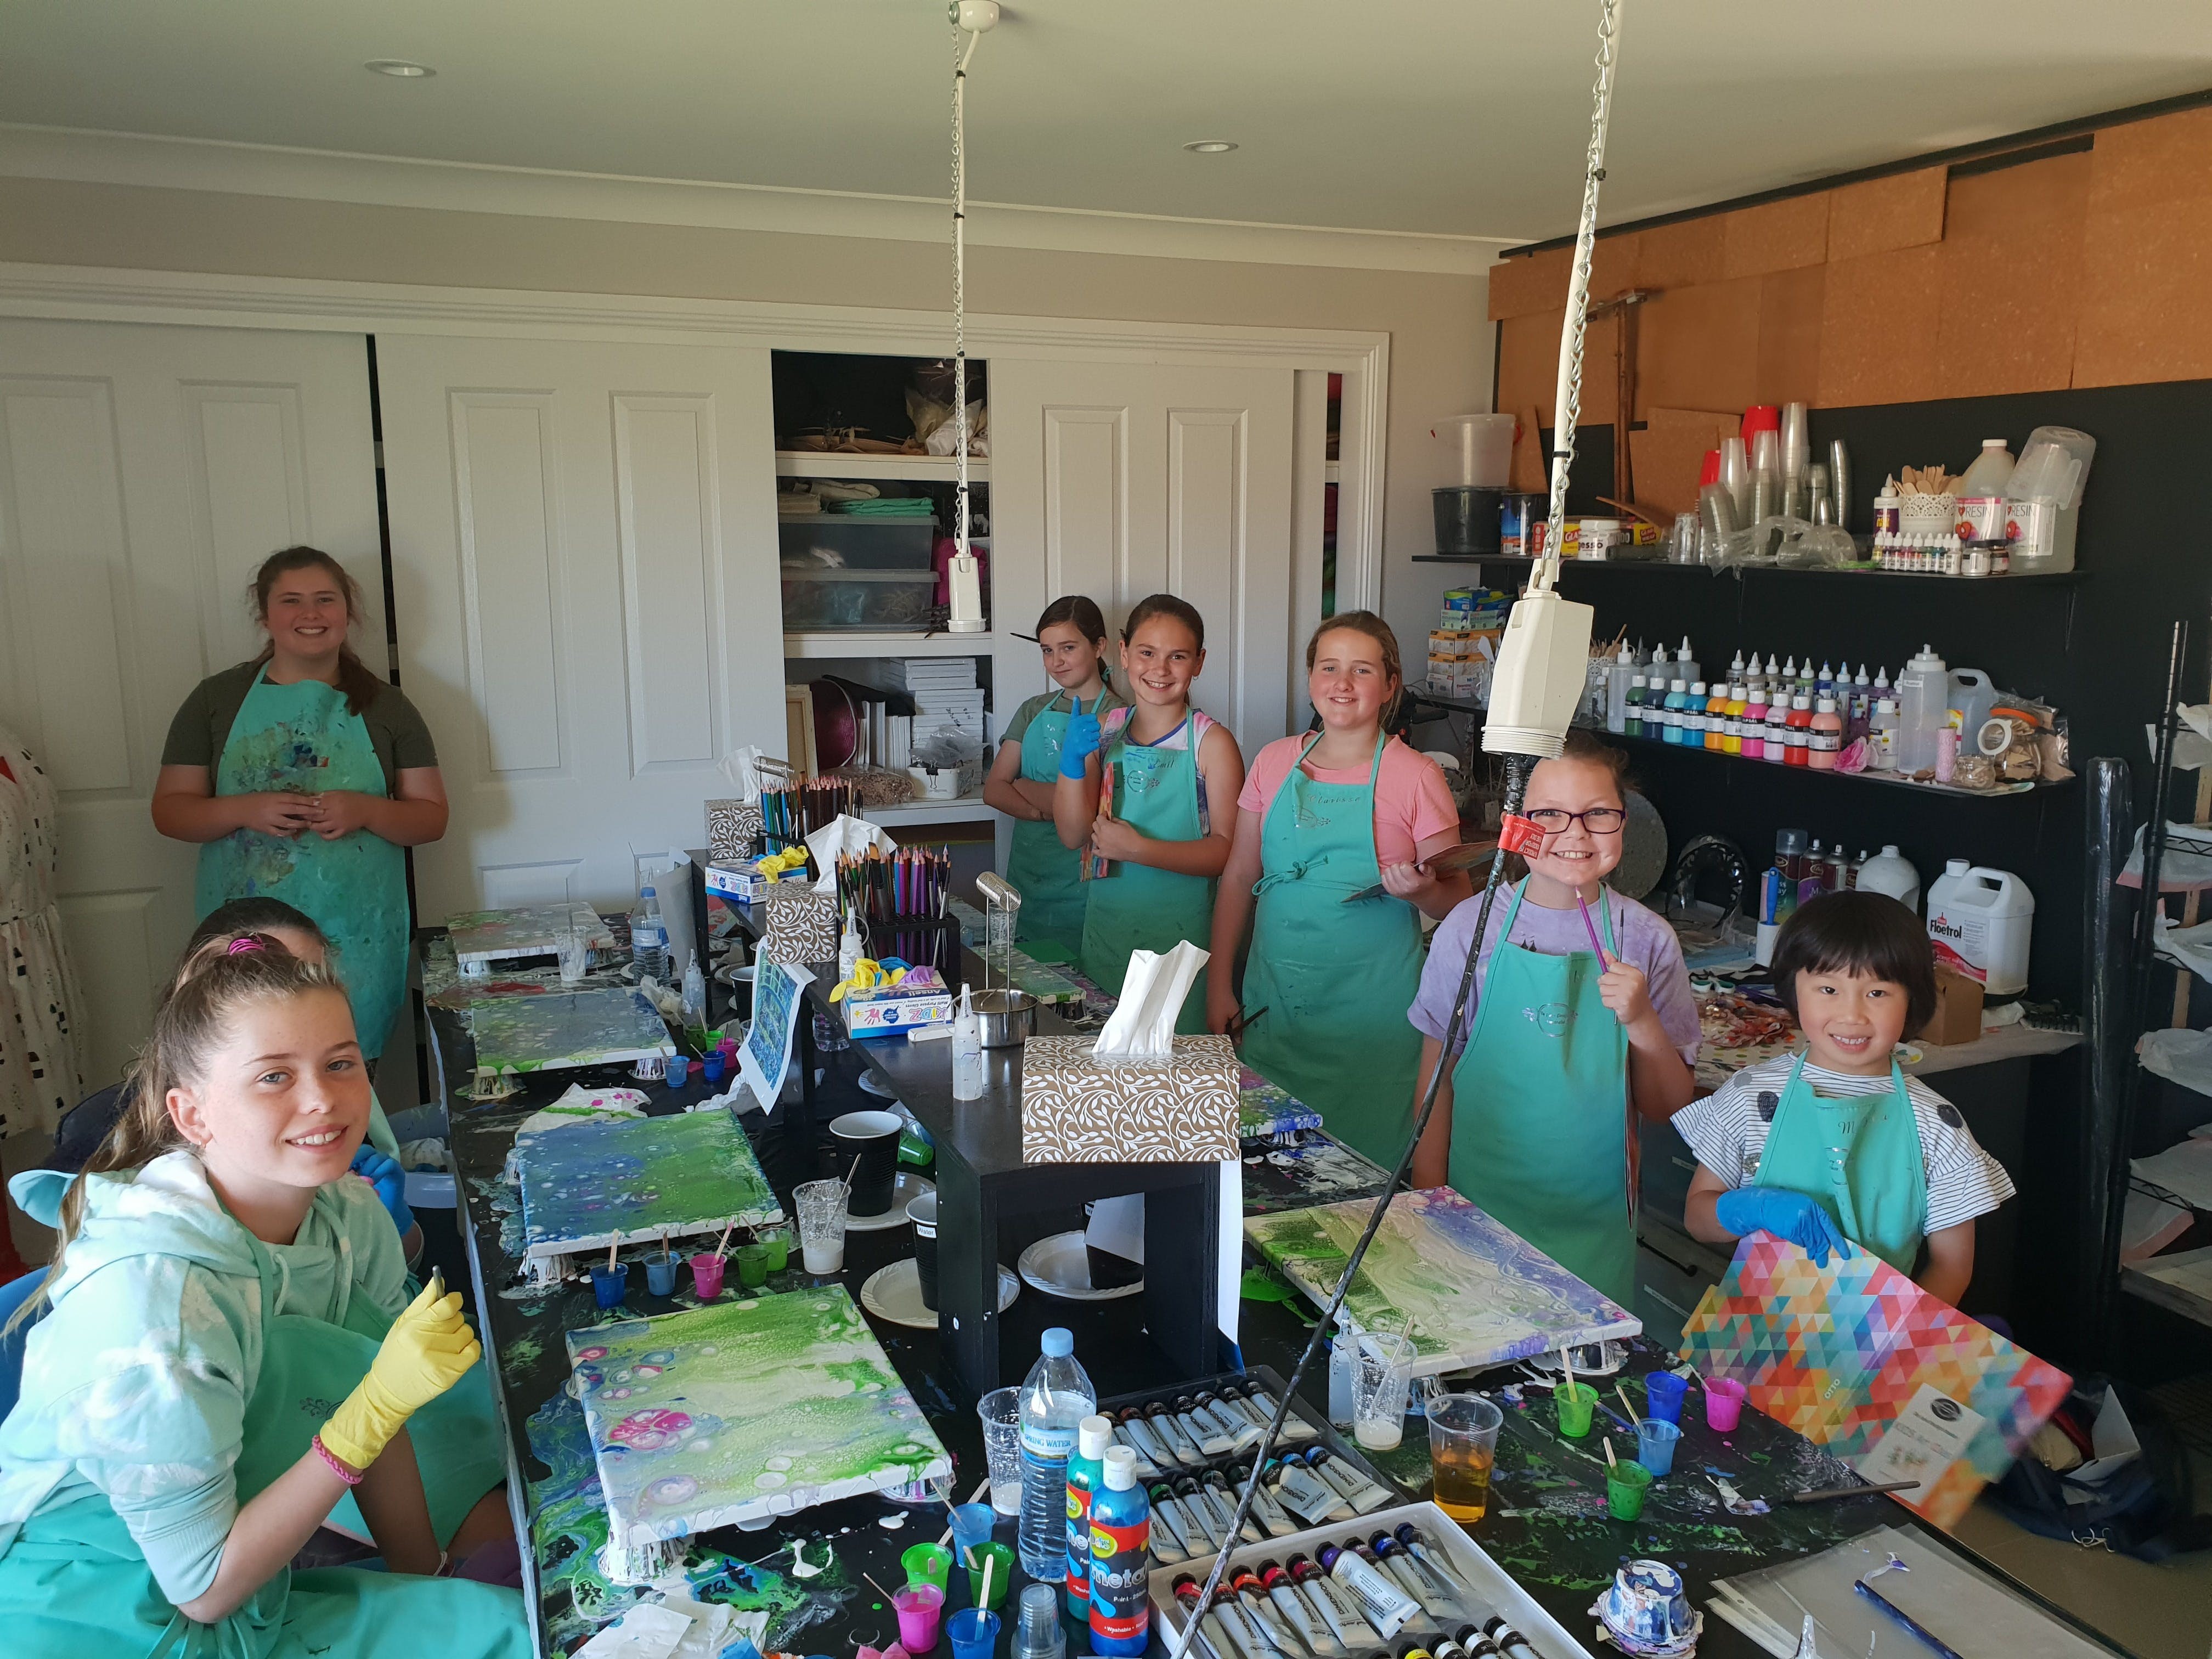 School holidays - Kids art class - Painting - New South Wales Tourism